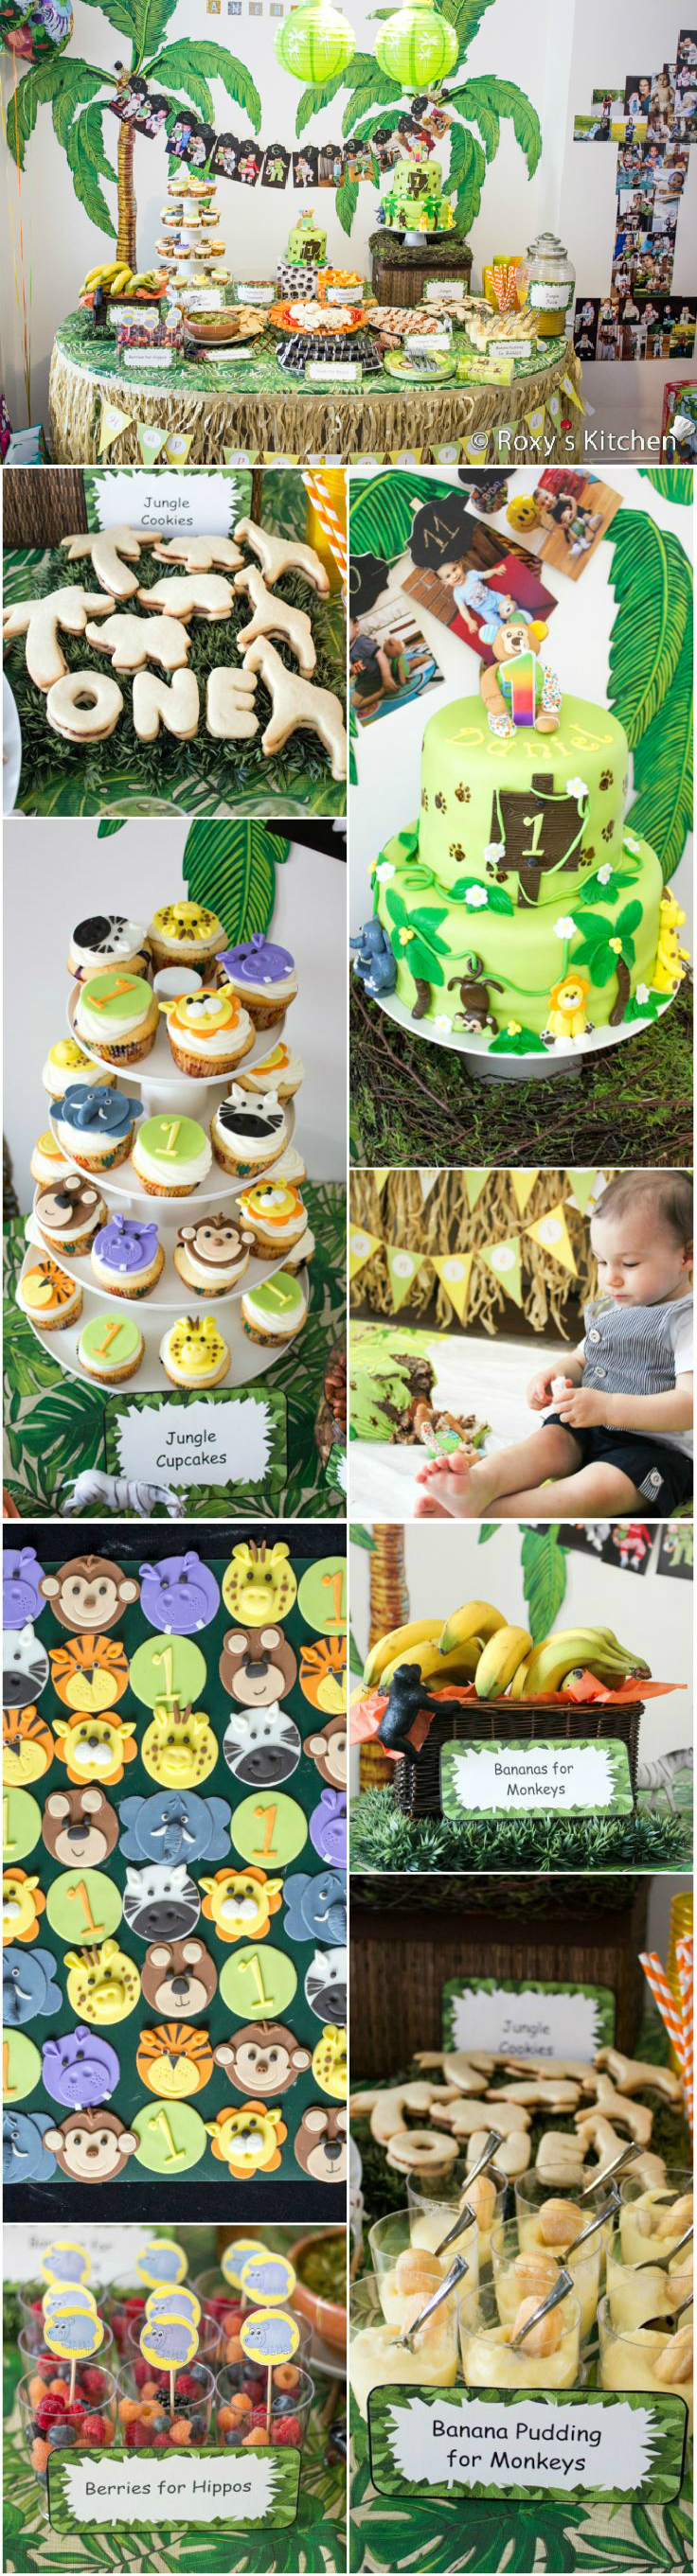 Safari jungle themed first birthday party part i for Animals decoration games